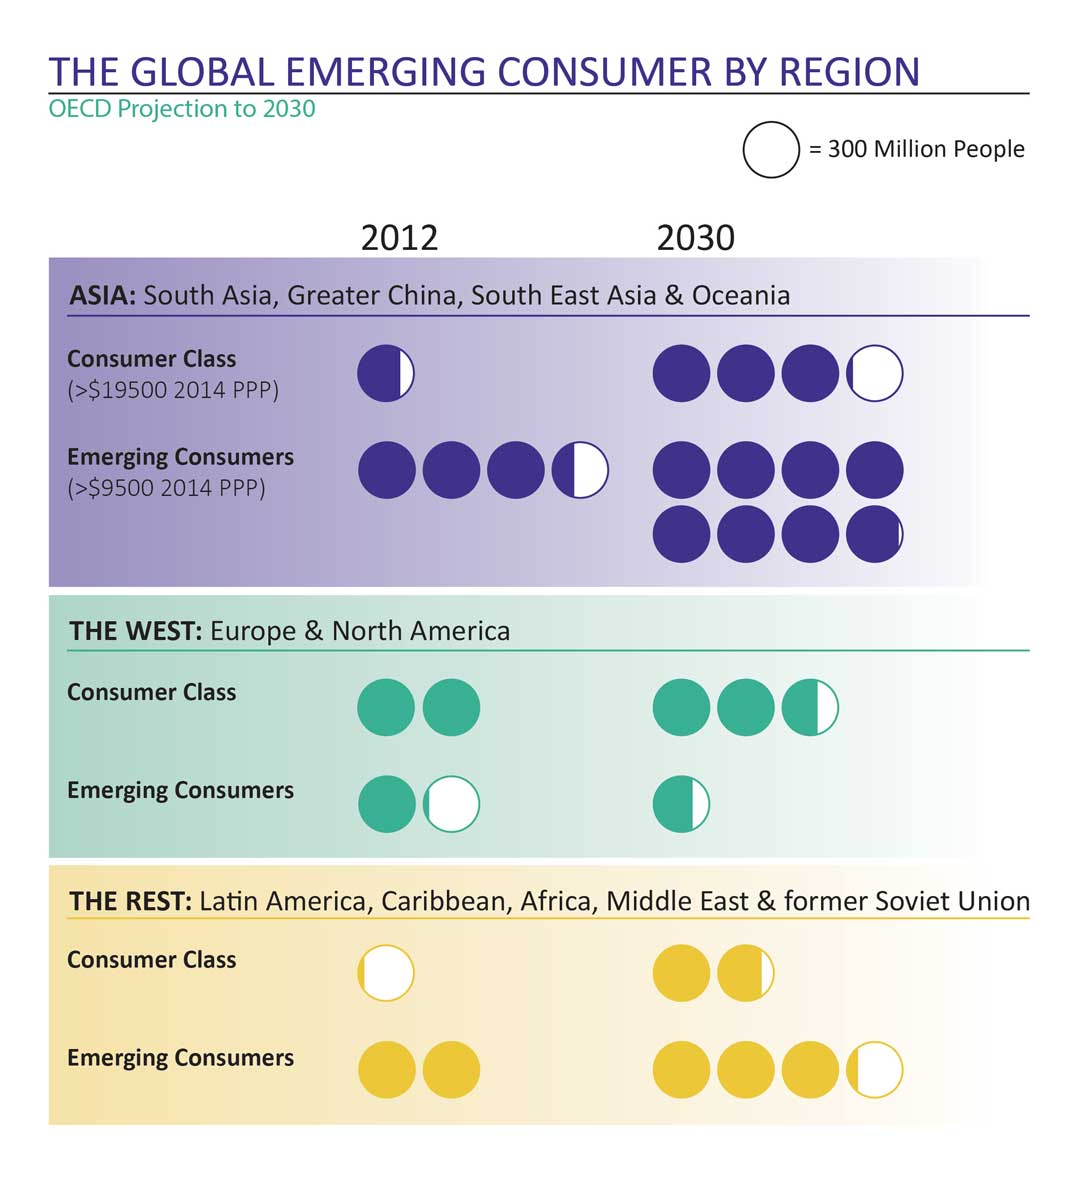 The Global Emerging Consumer by Region